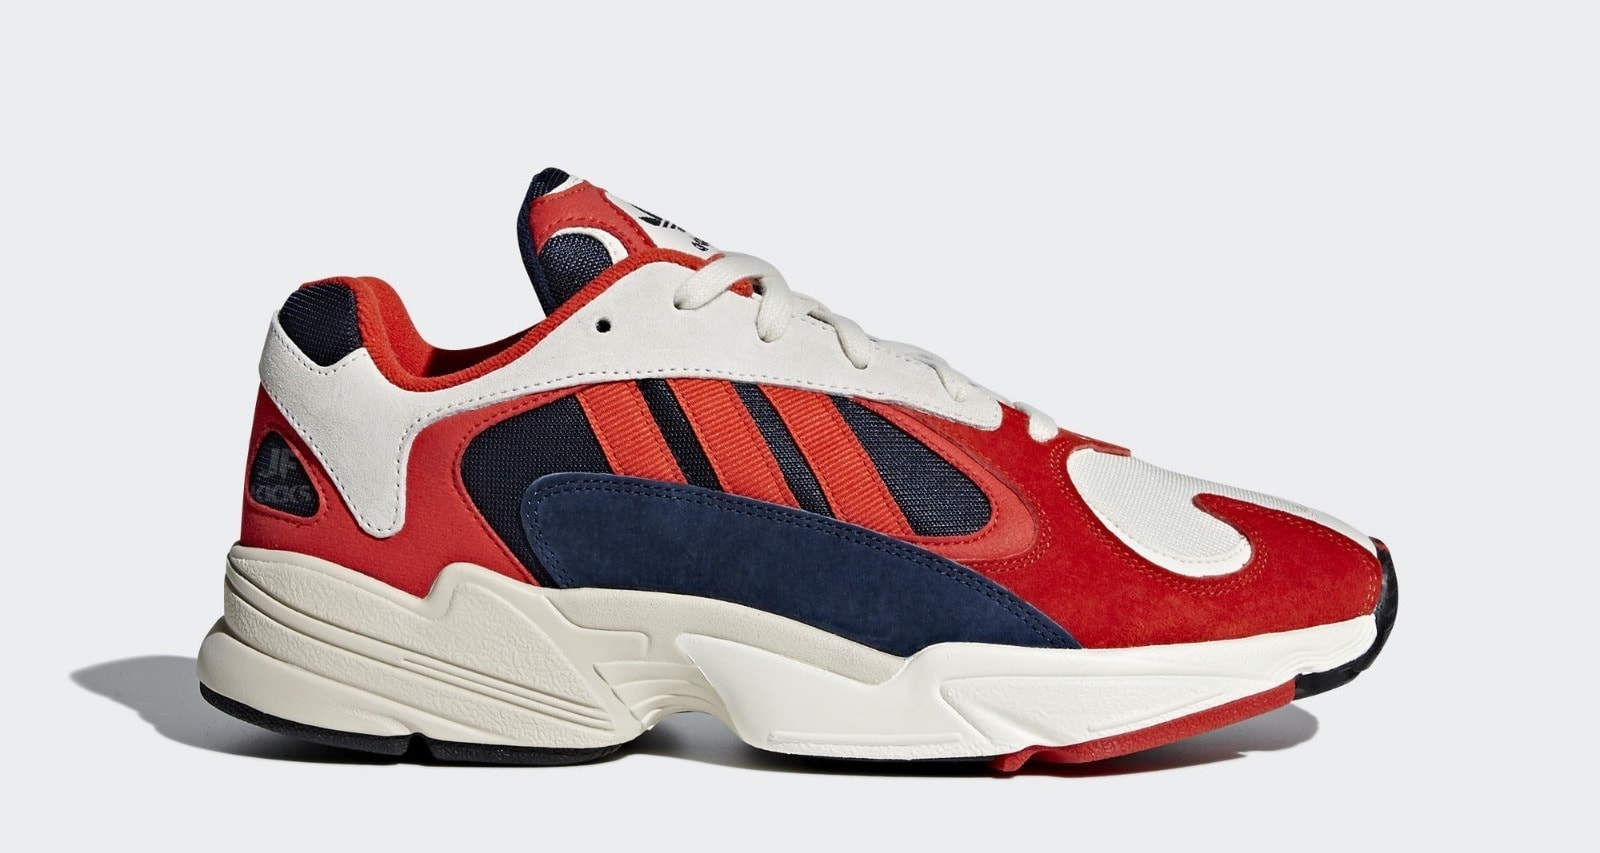 adidas is returning to the 90 s for their latest silhouette. Early images  and sightings have plagued sneaker articles for months 6c0c7722b